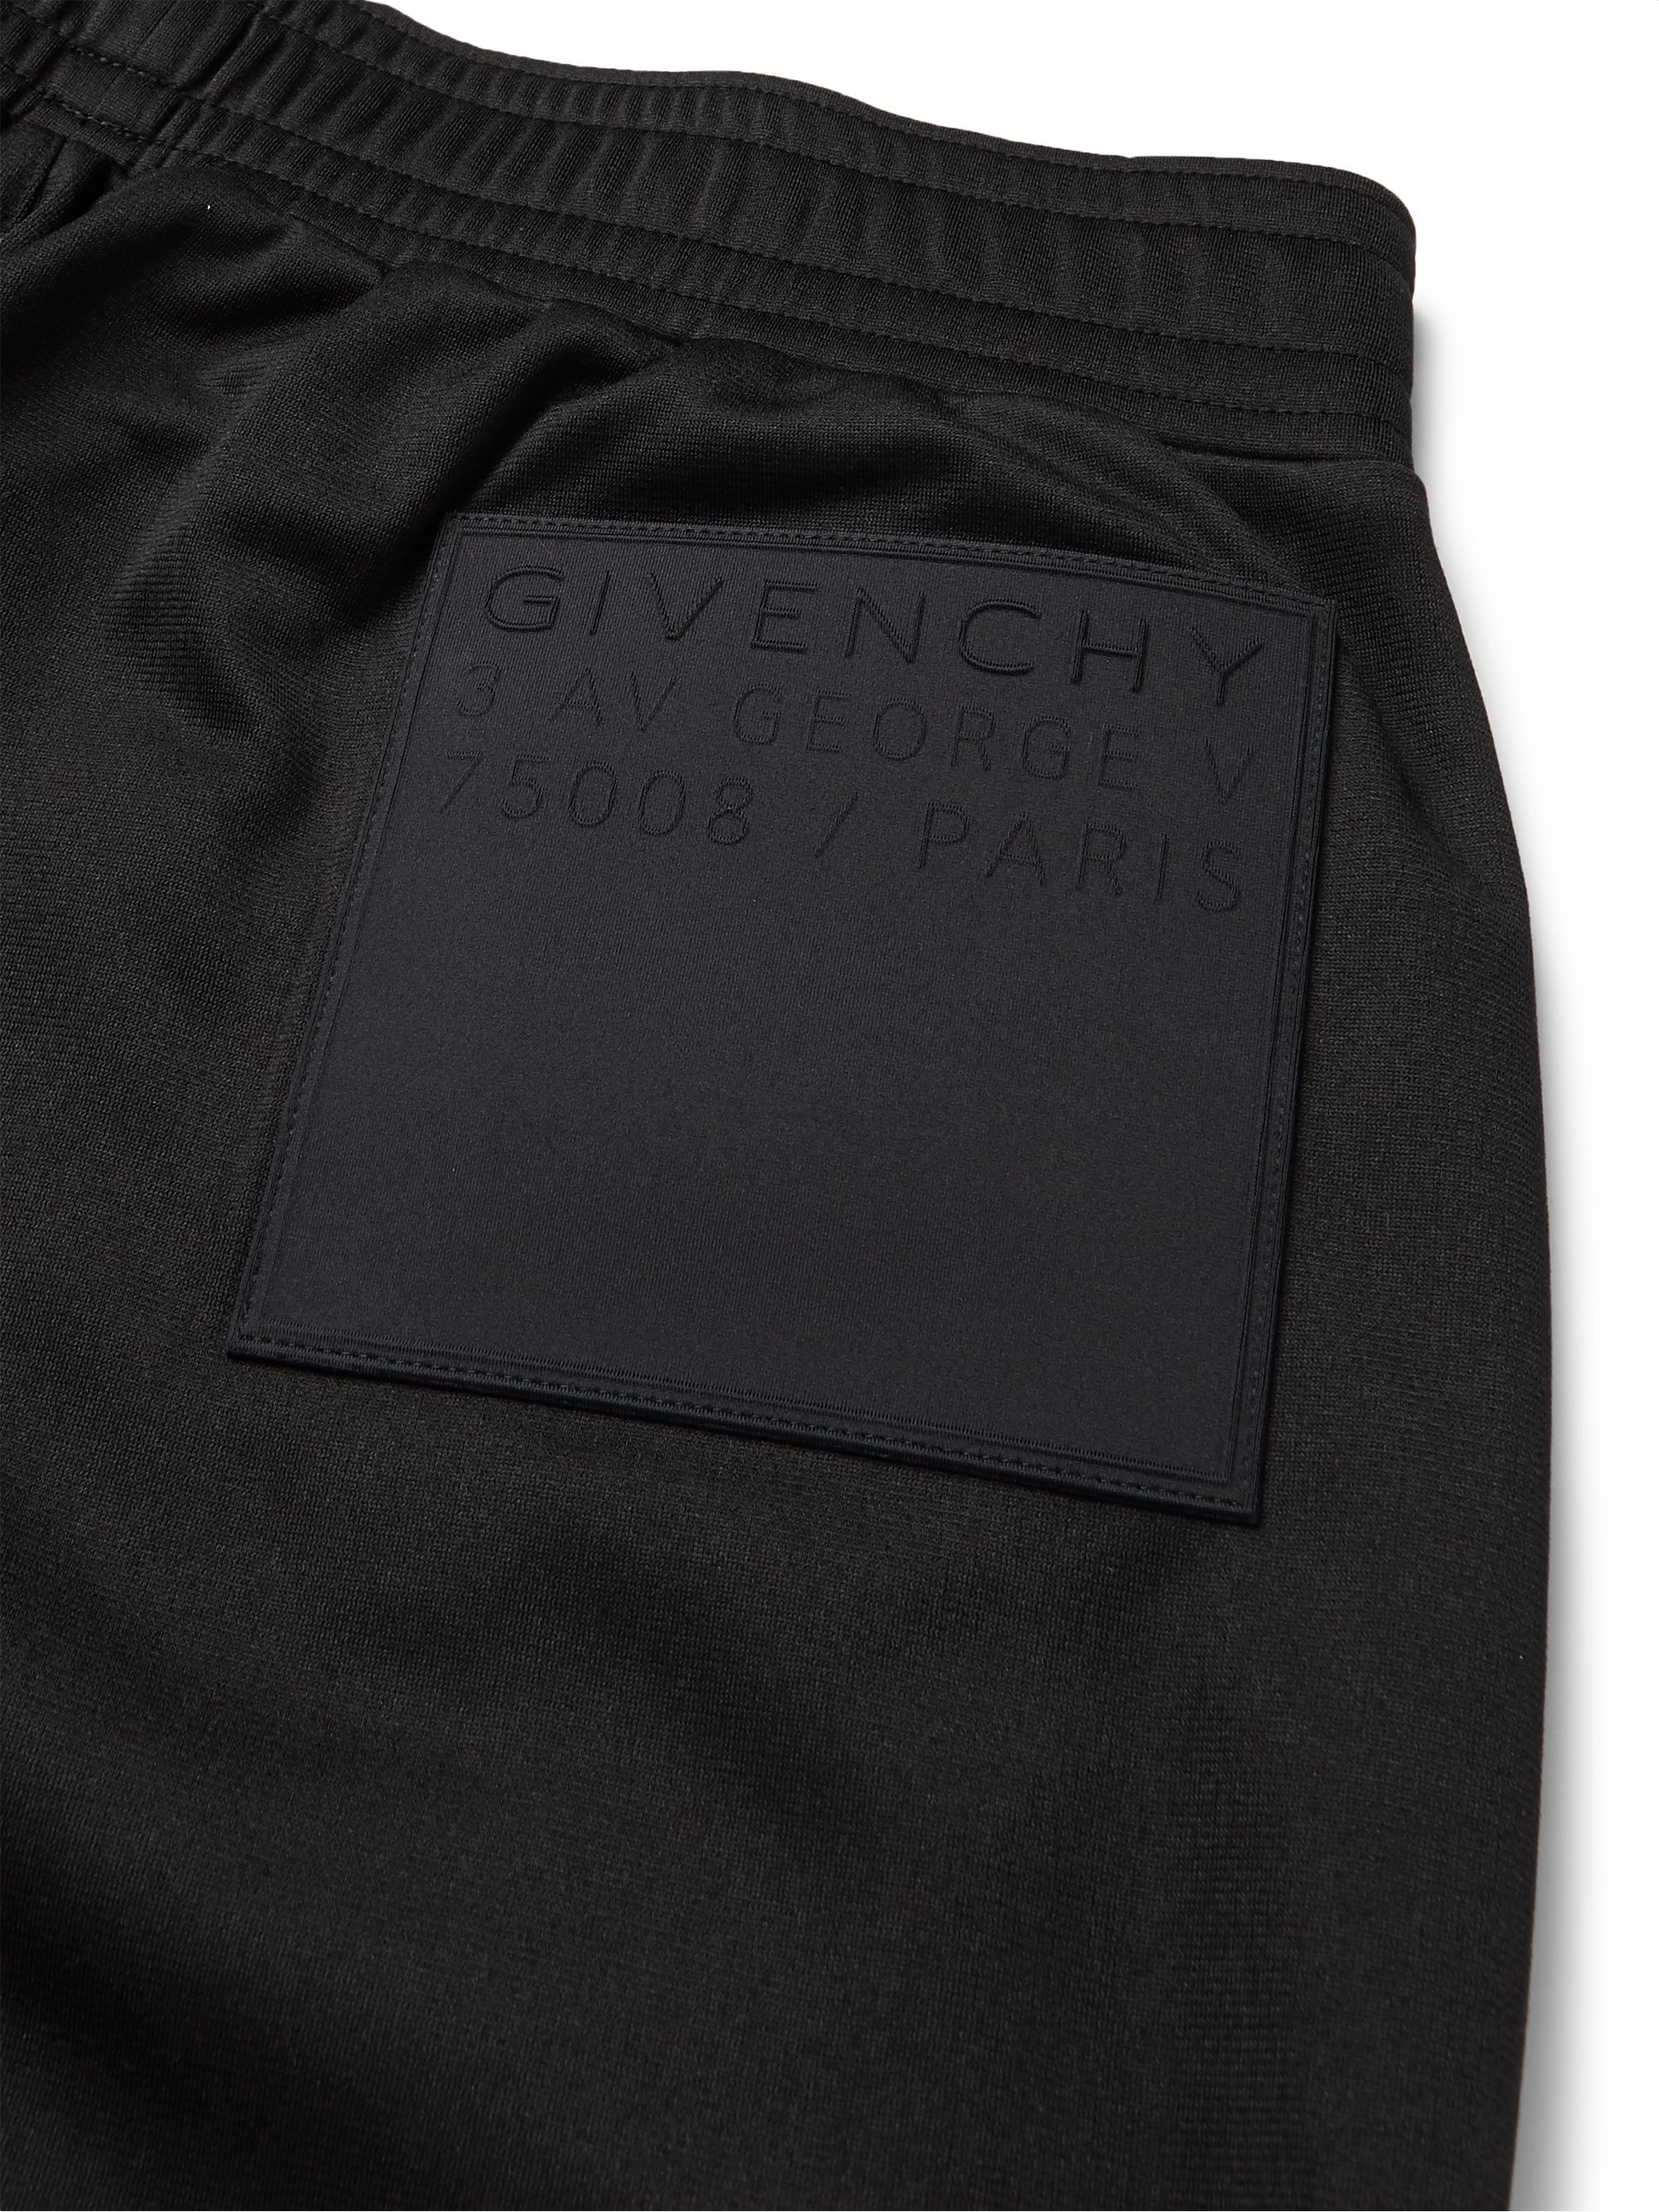 Givenchy Tapered Logo-Appliquéd Fleece-Back Tech-Jersey Track Pants